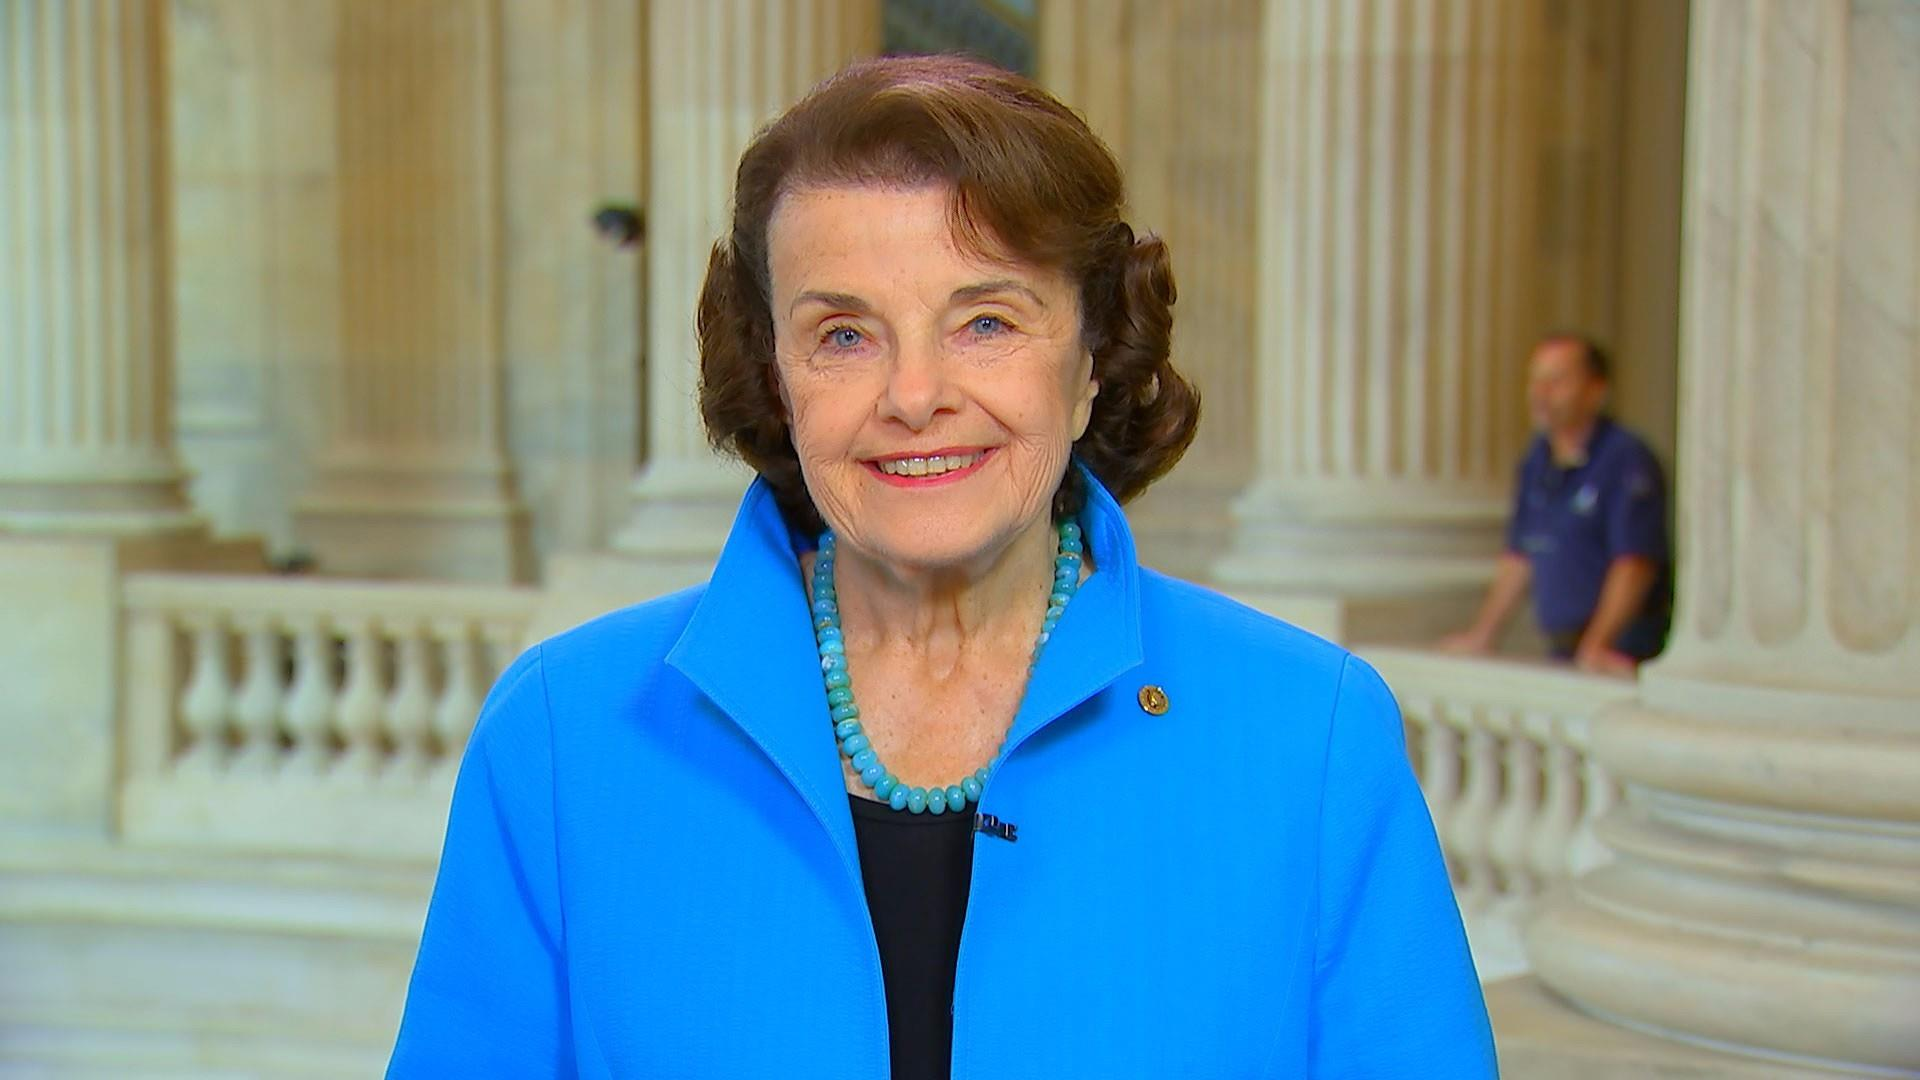 Sen. Feinstein: President Trump 'can't get over' Sessions recusal